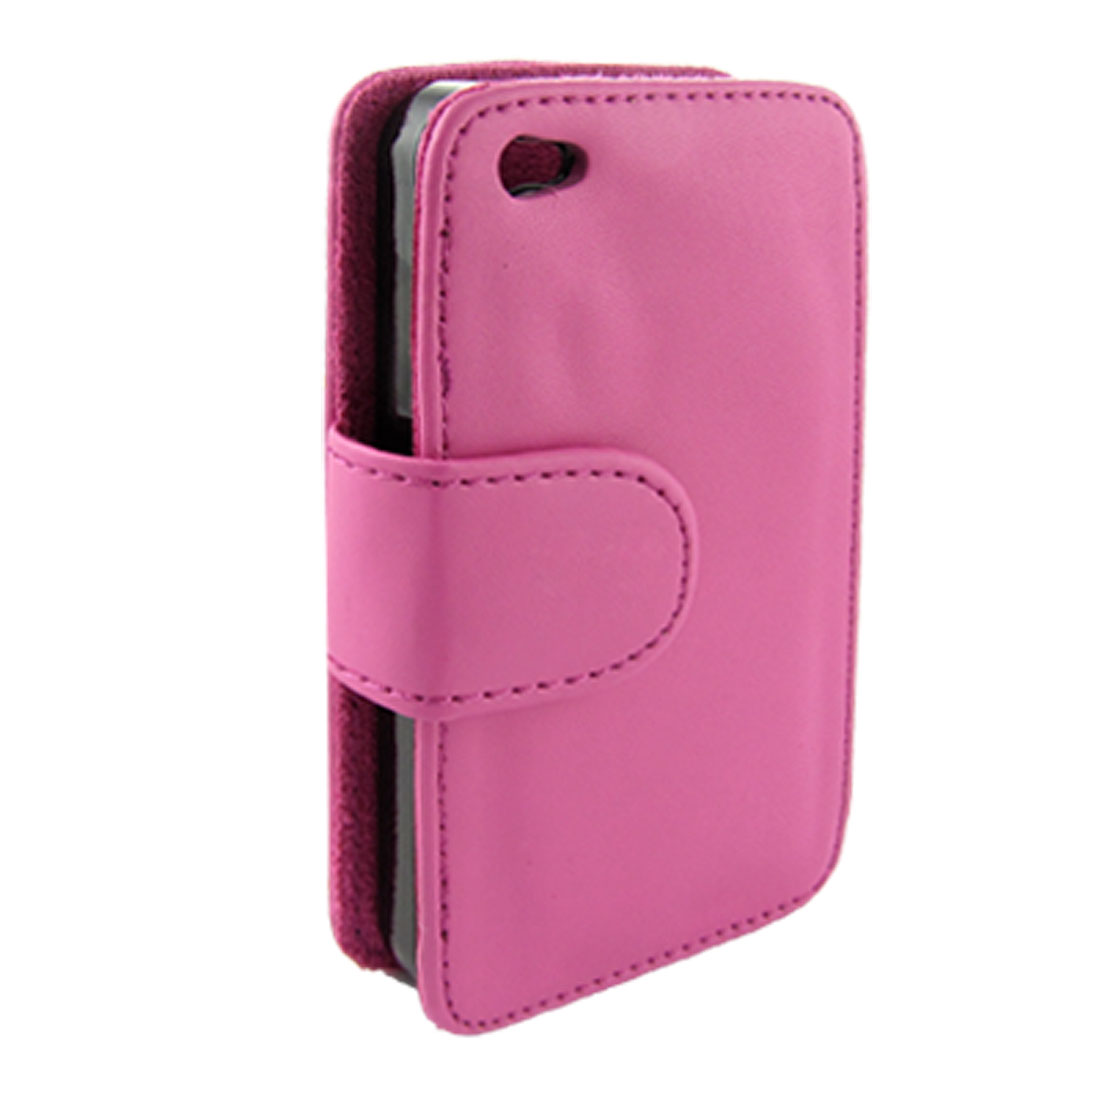 Dark Pink Faux Leather Flip Protective Holder Cover for iPhone 4